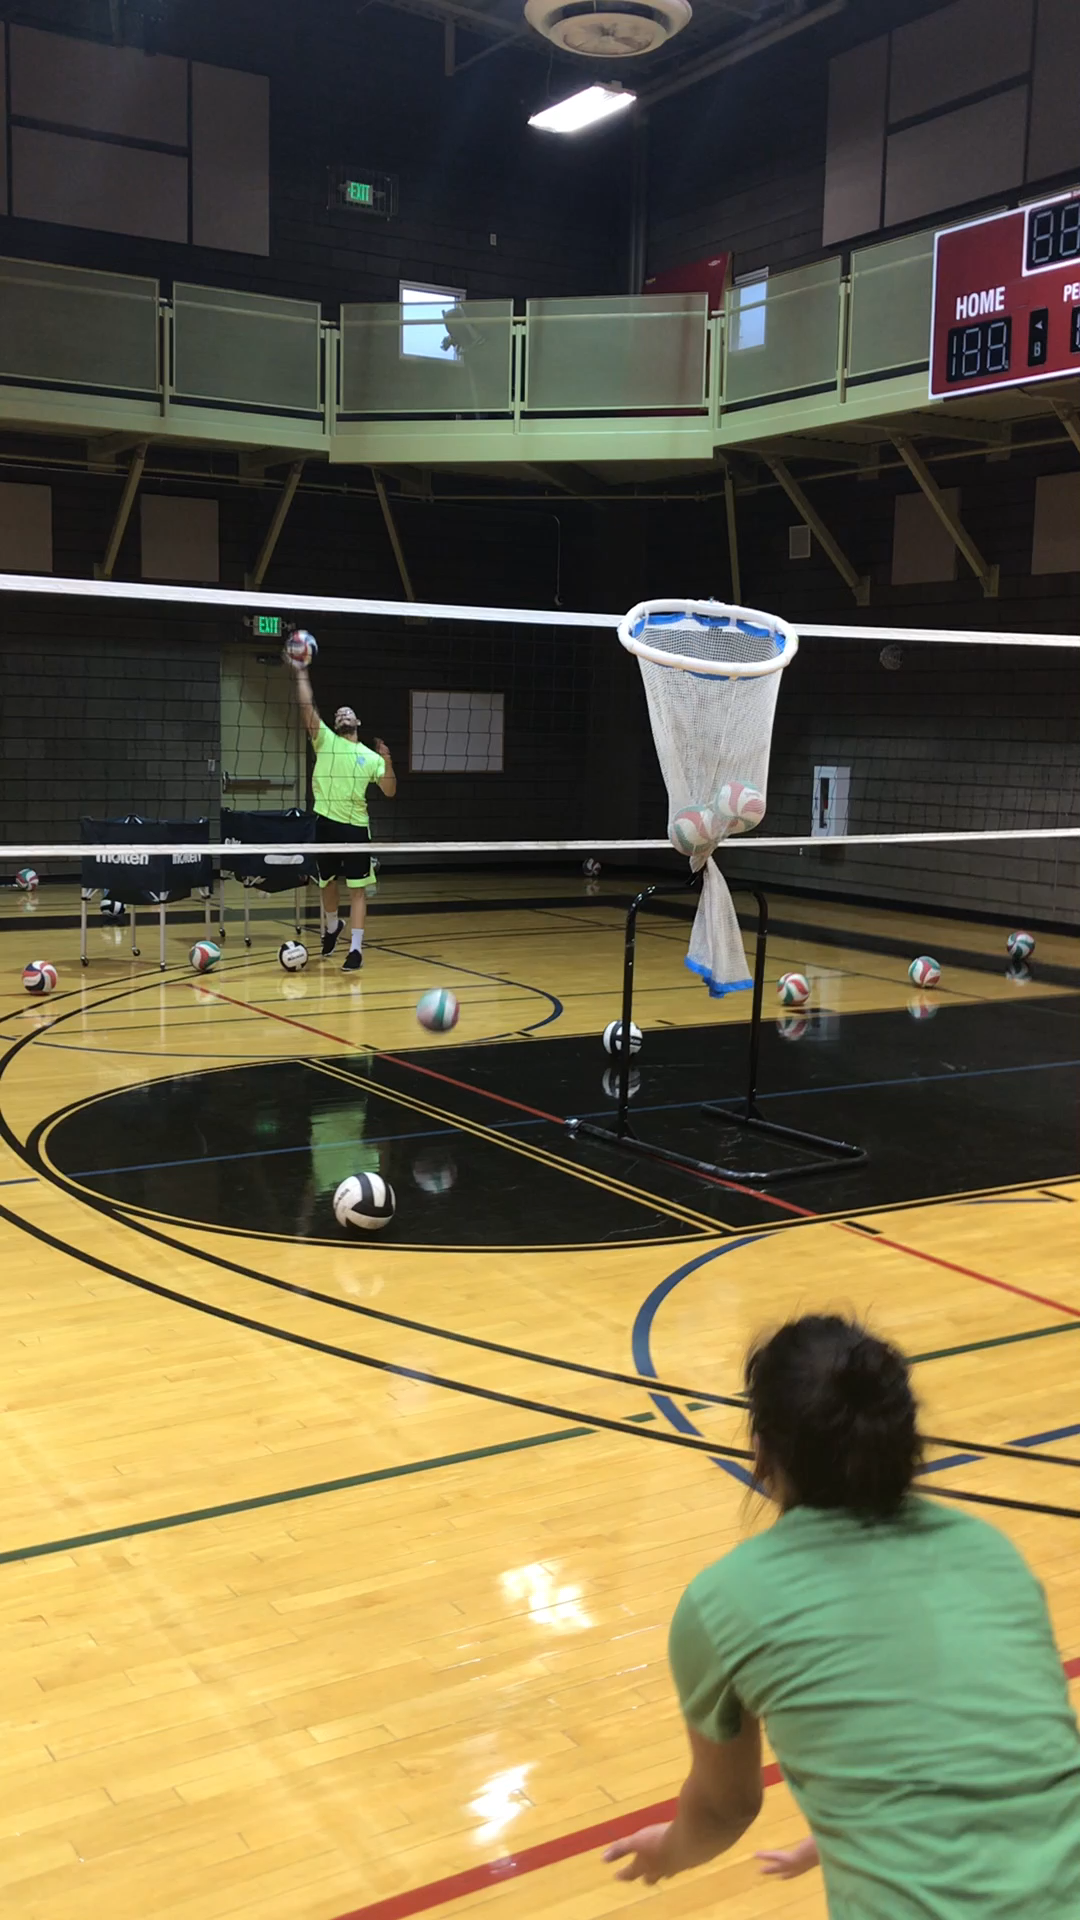 2 Volleyball Passing Drills How To Get Better At Passing In Volleyball Video Video Volleyball Passing Drills Volleyball Workouts Volleyball Drills